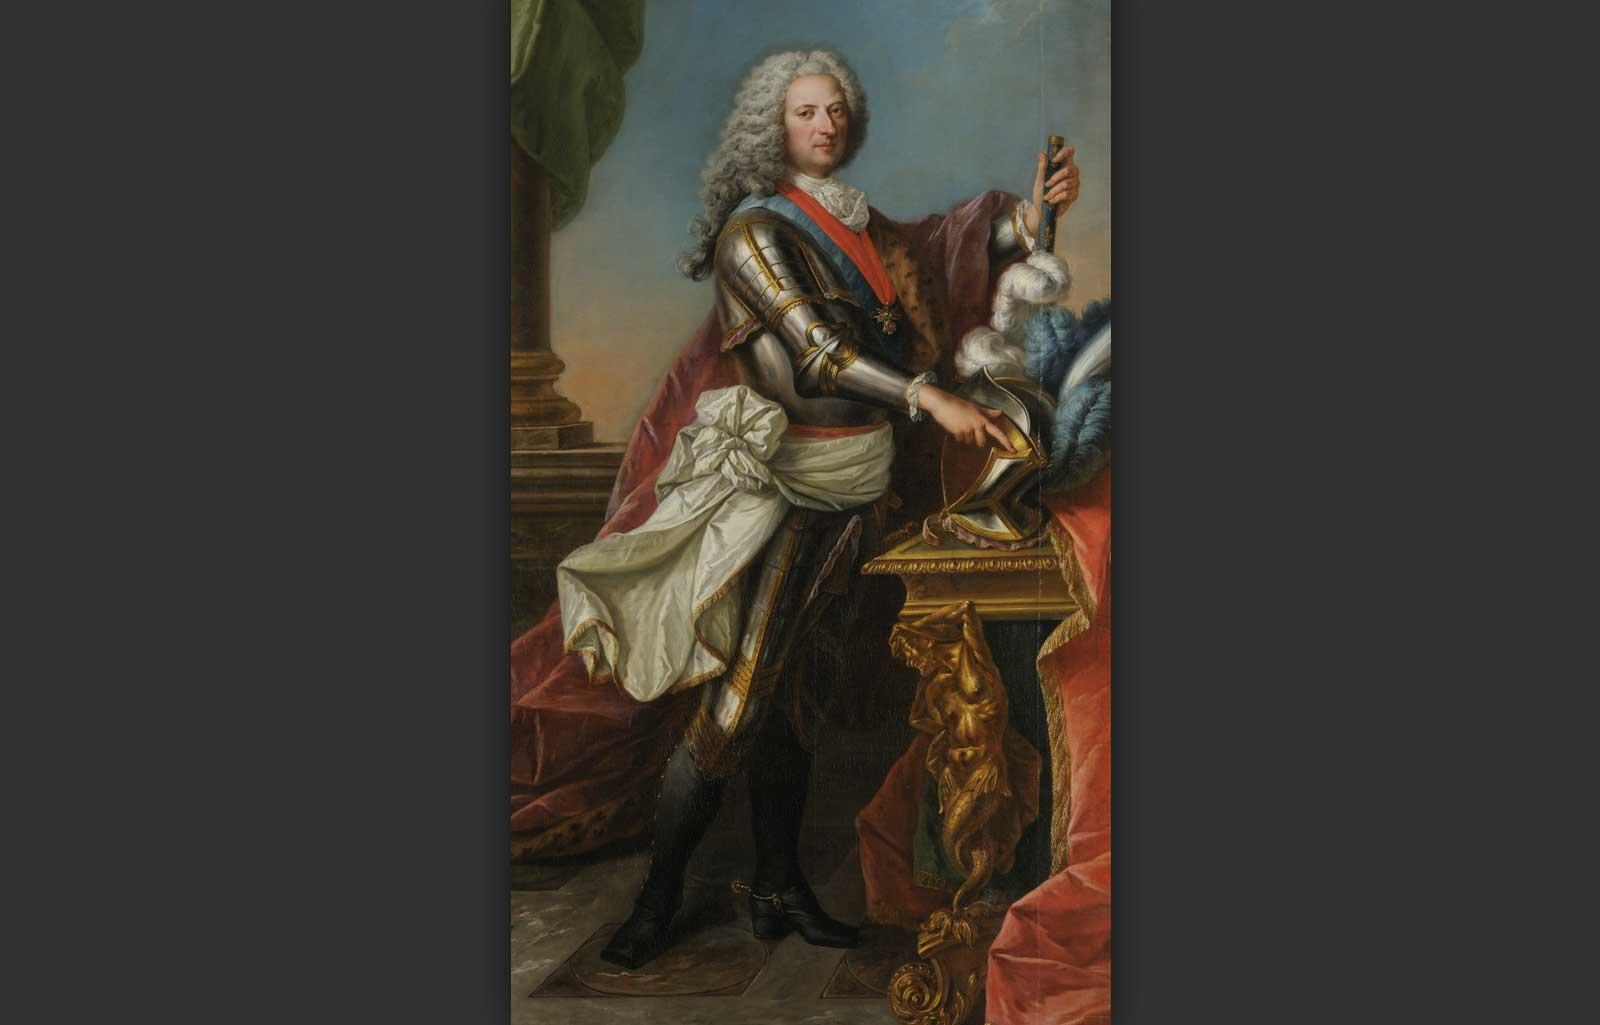 Philippe II, Duke of Orléans, 1715-1723, Attributed to Guy Noël Aubry.